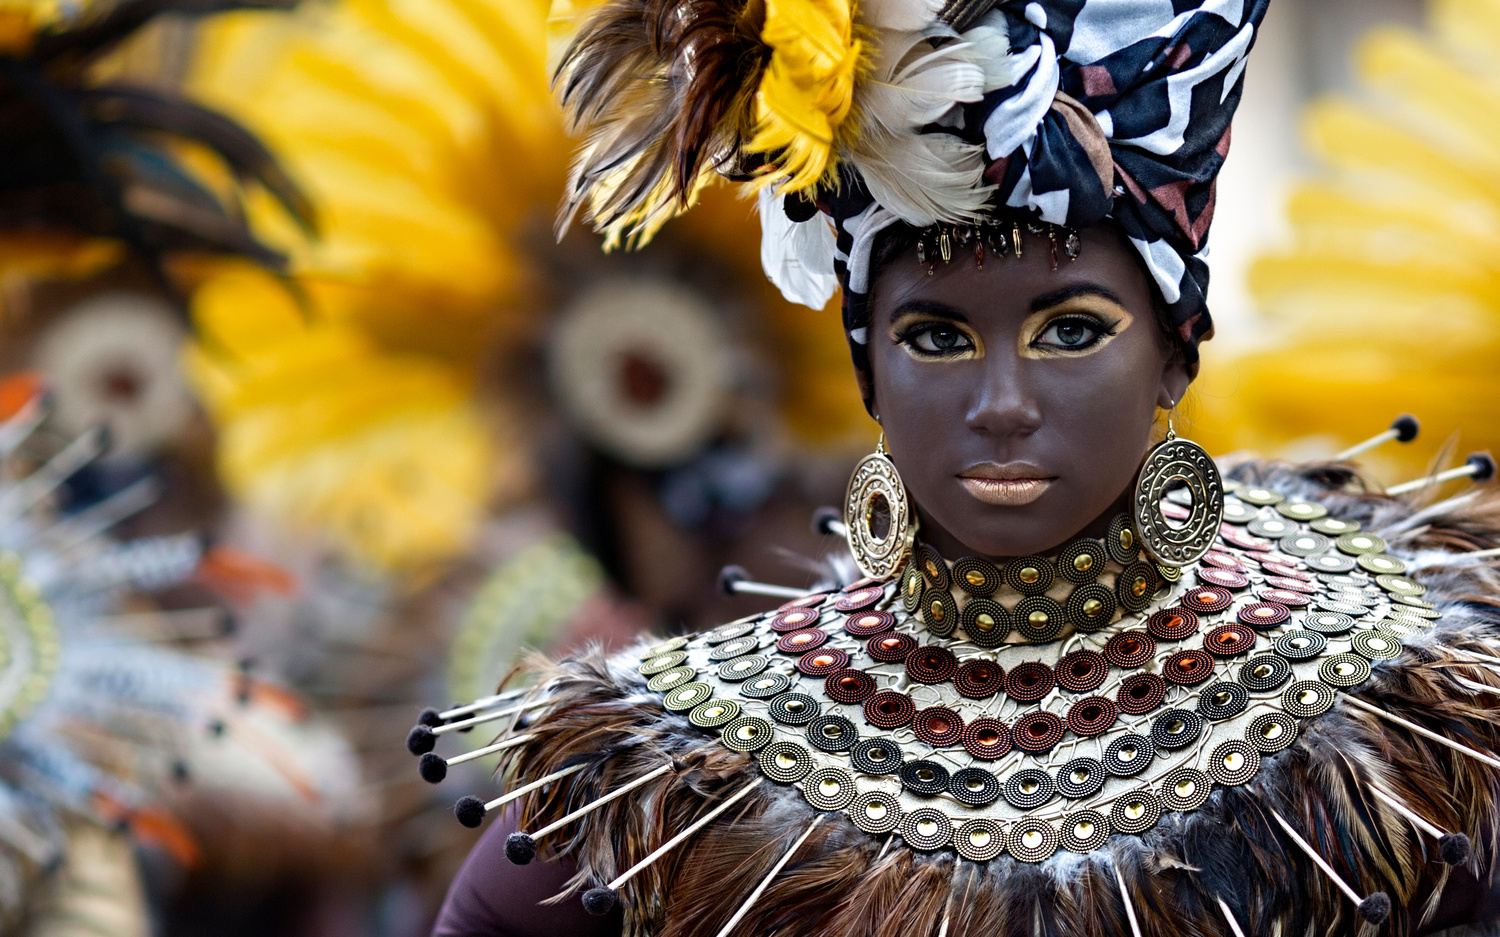 African dream by Vicente Concha